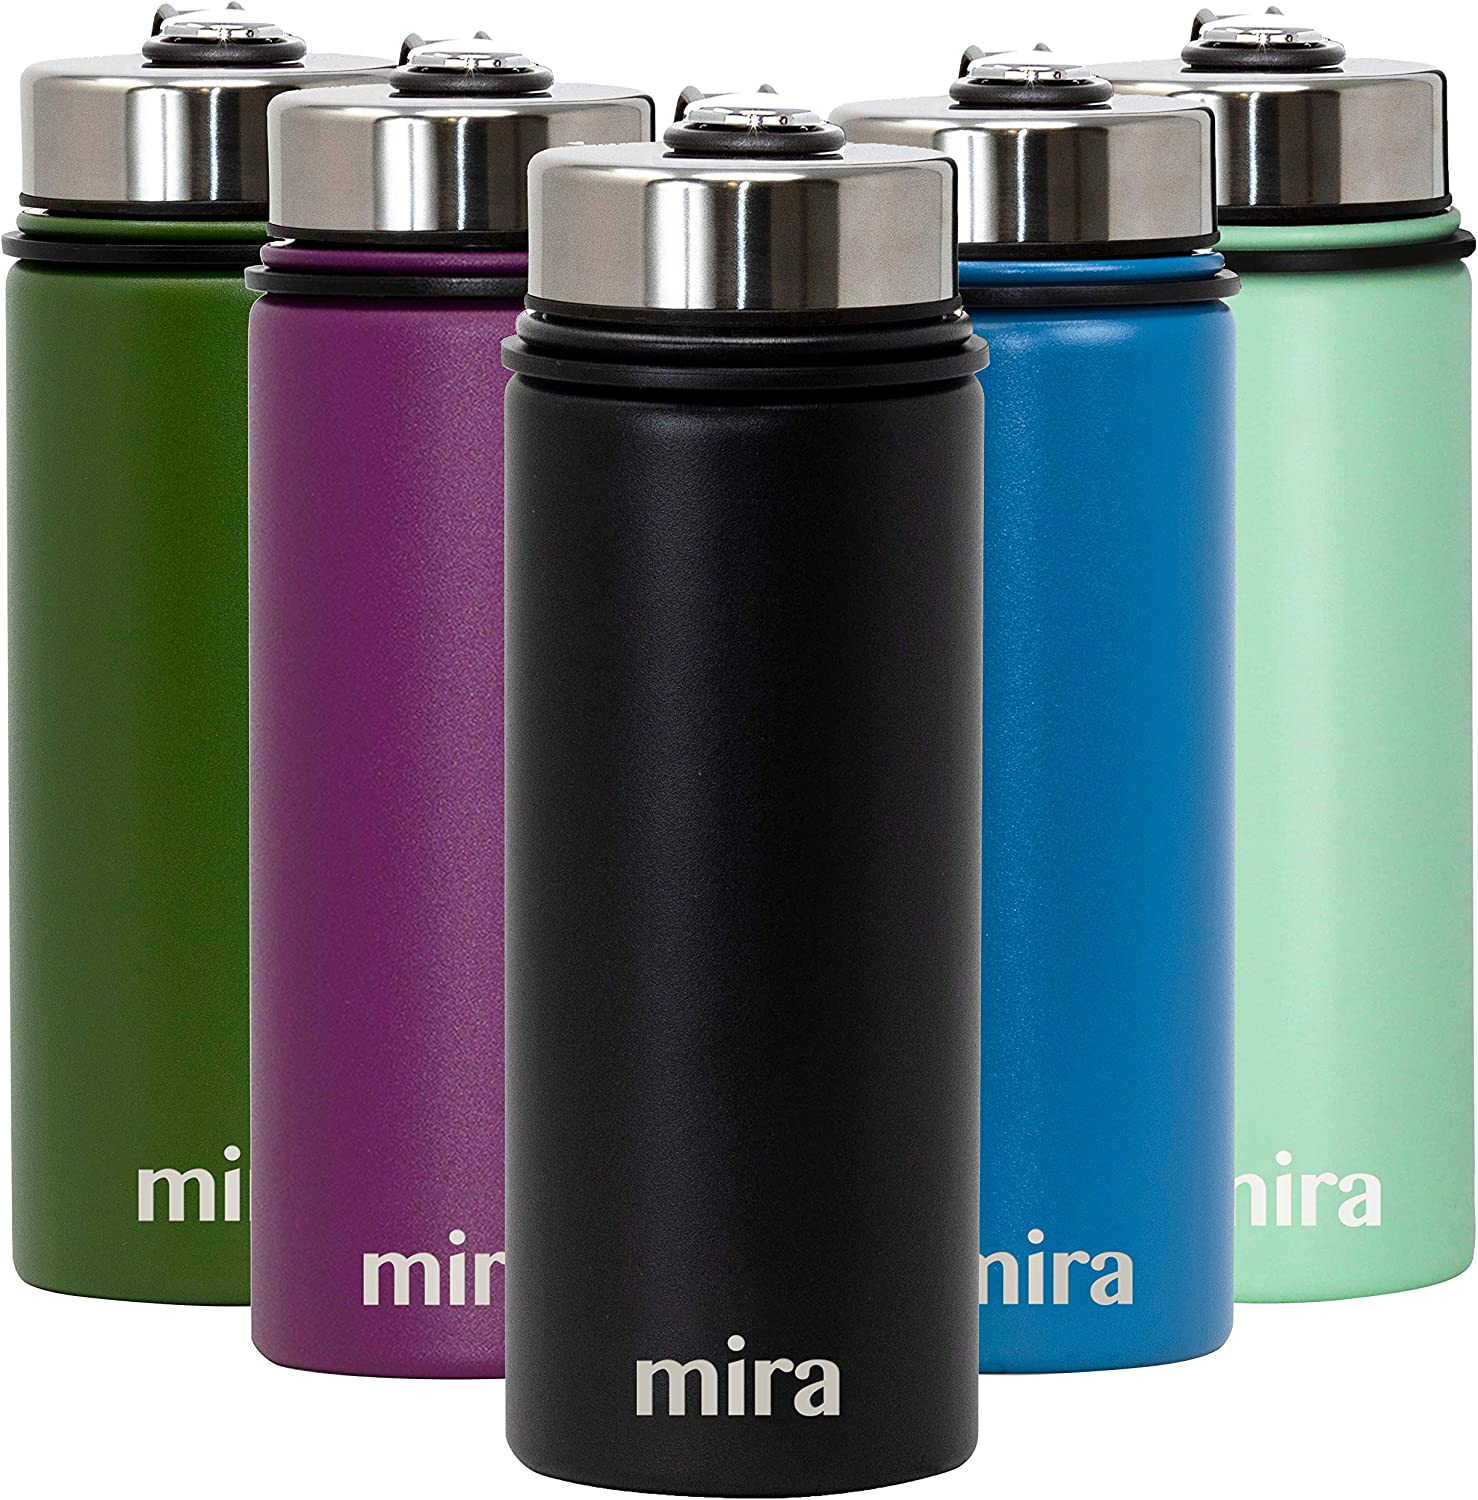 MIRA 18 Oz Stainless Steel Vacuum Insulated Wide Mouth Water Bottle | Thermos Keeps Cold for 24 hours, Hot for 12 hours | Double Walled Powder Coated Travel Flask | Black